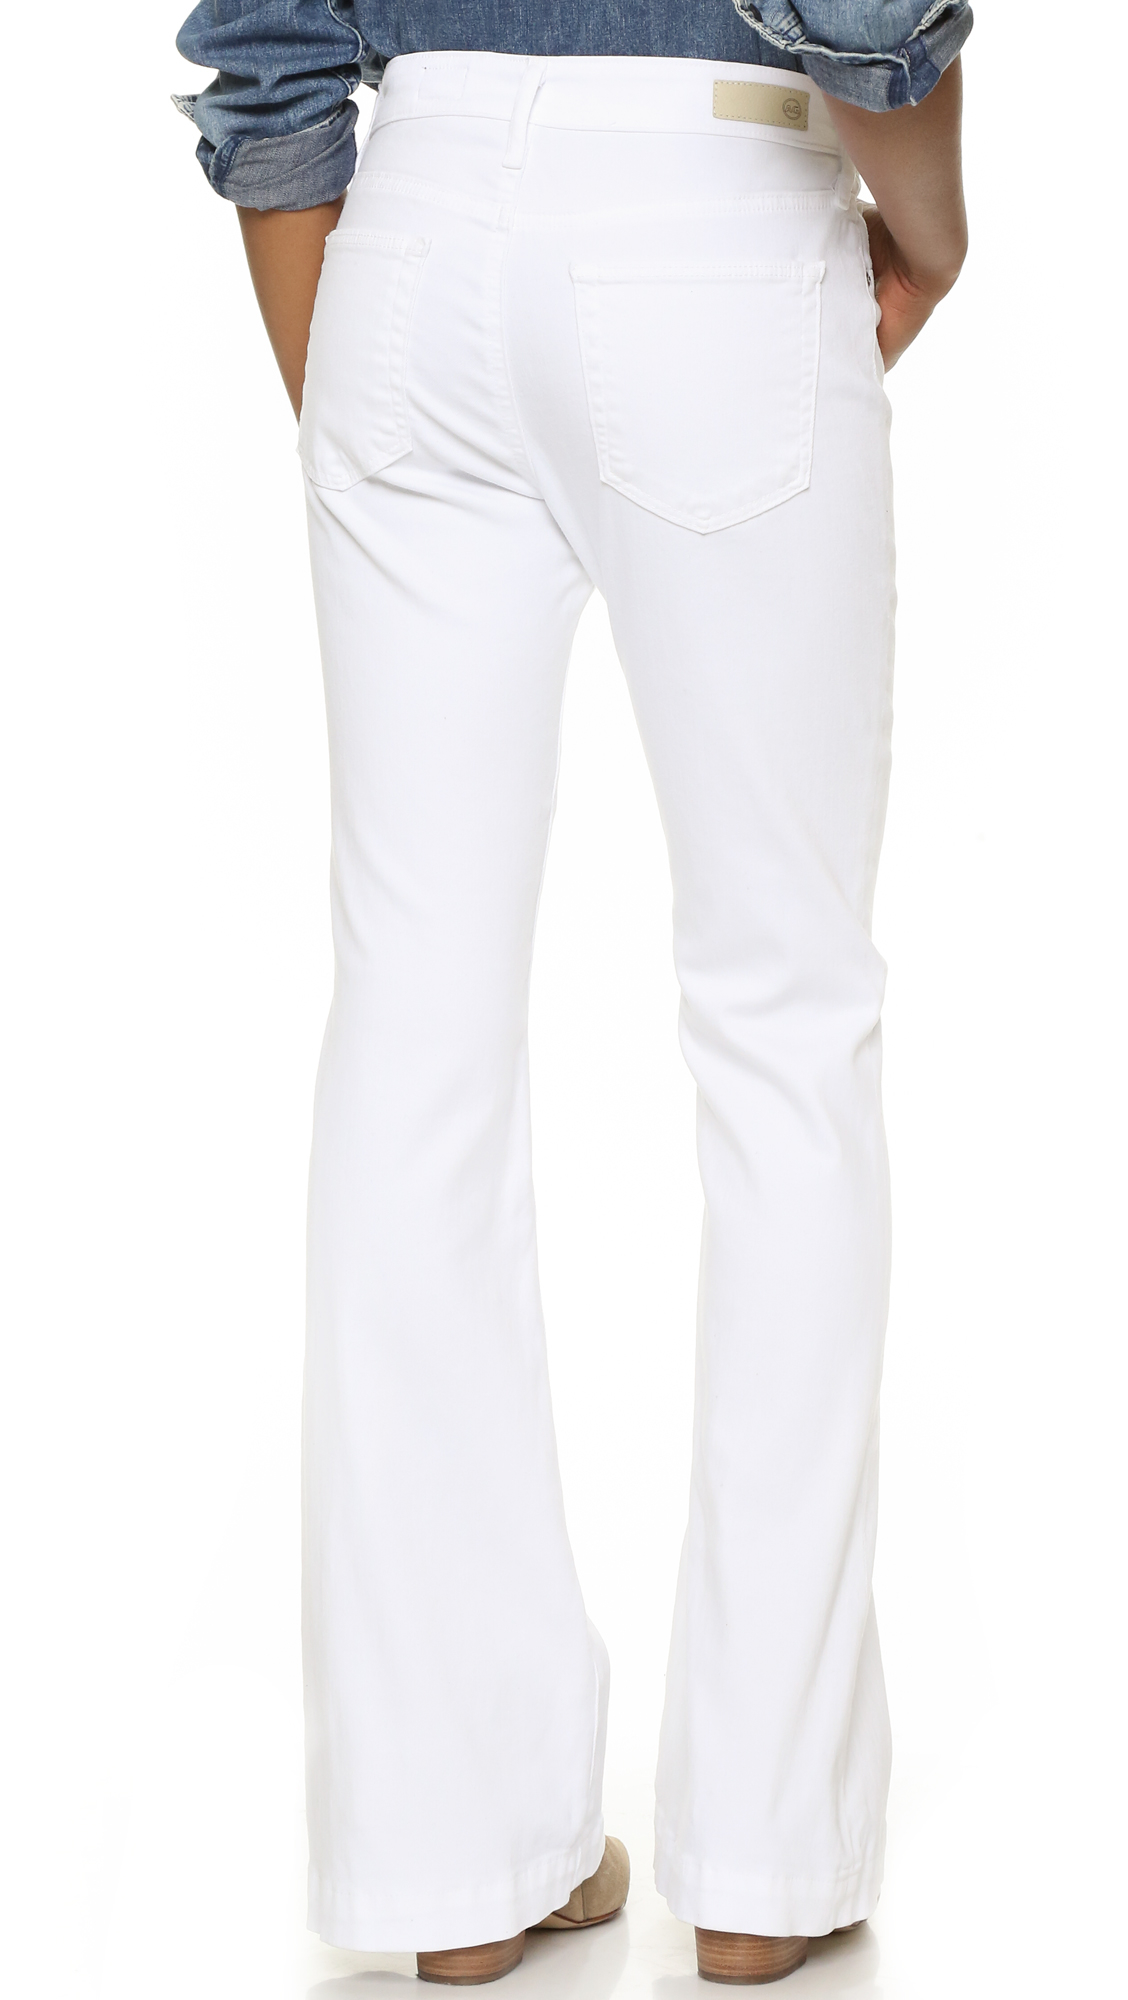 Ag jeans The Petite Janis Flare Jeans in White | Lyst